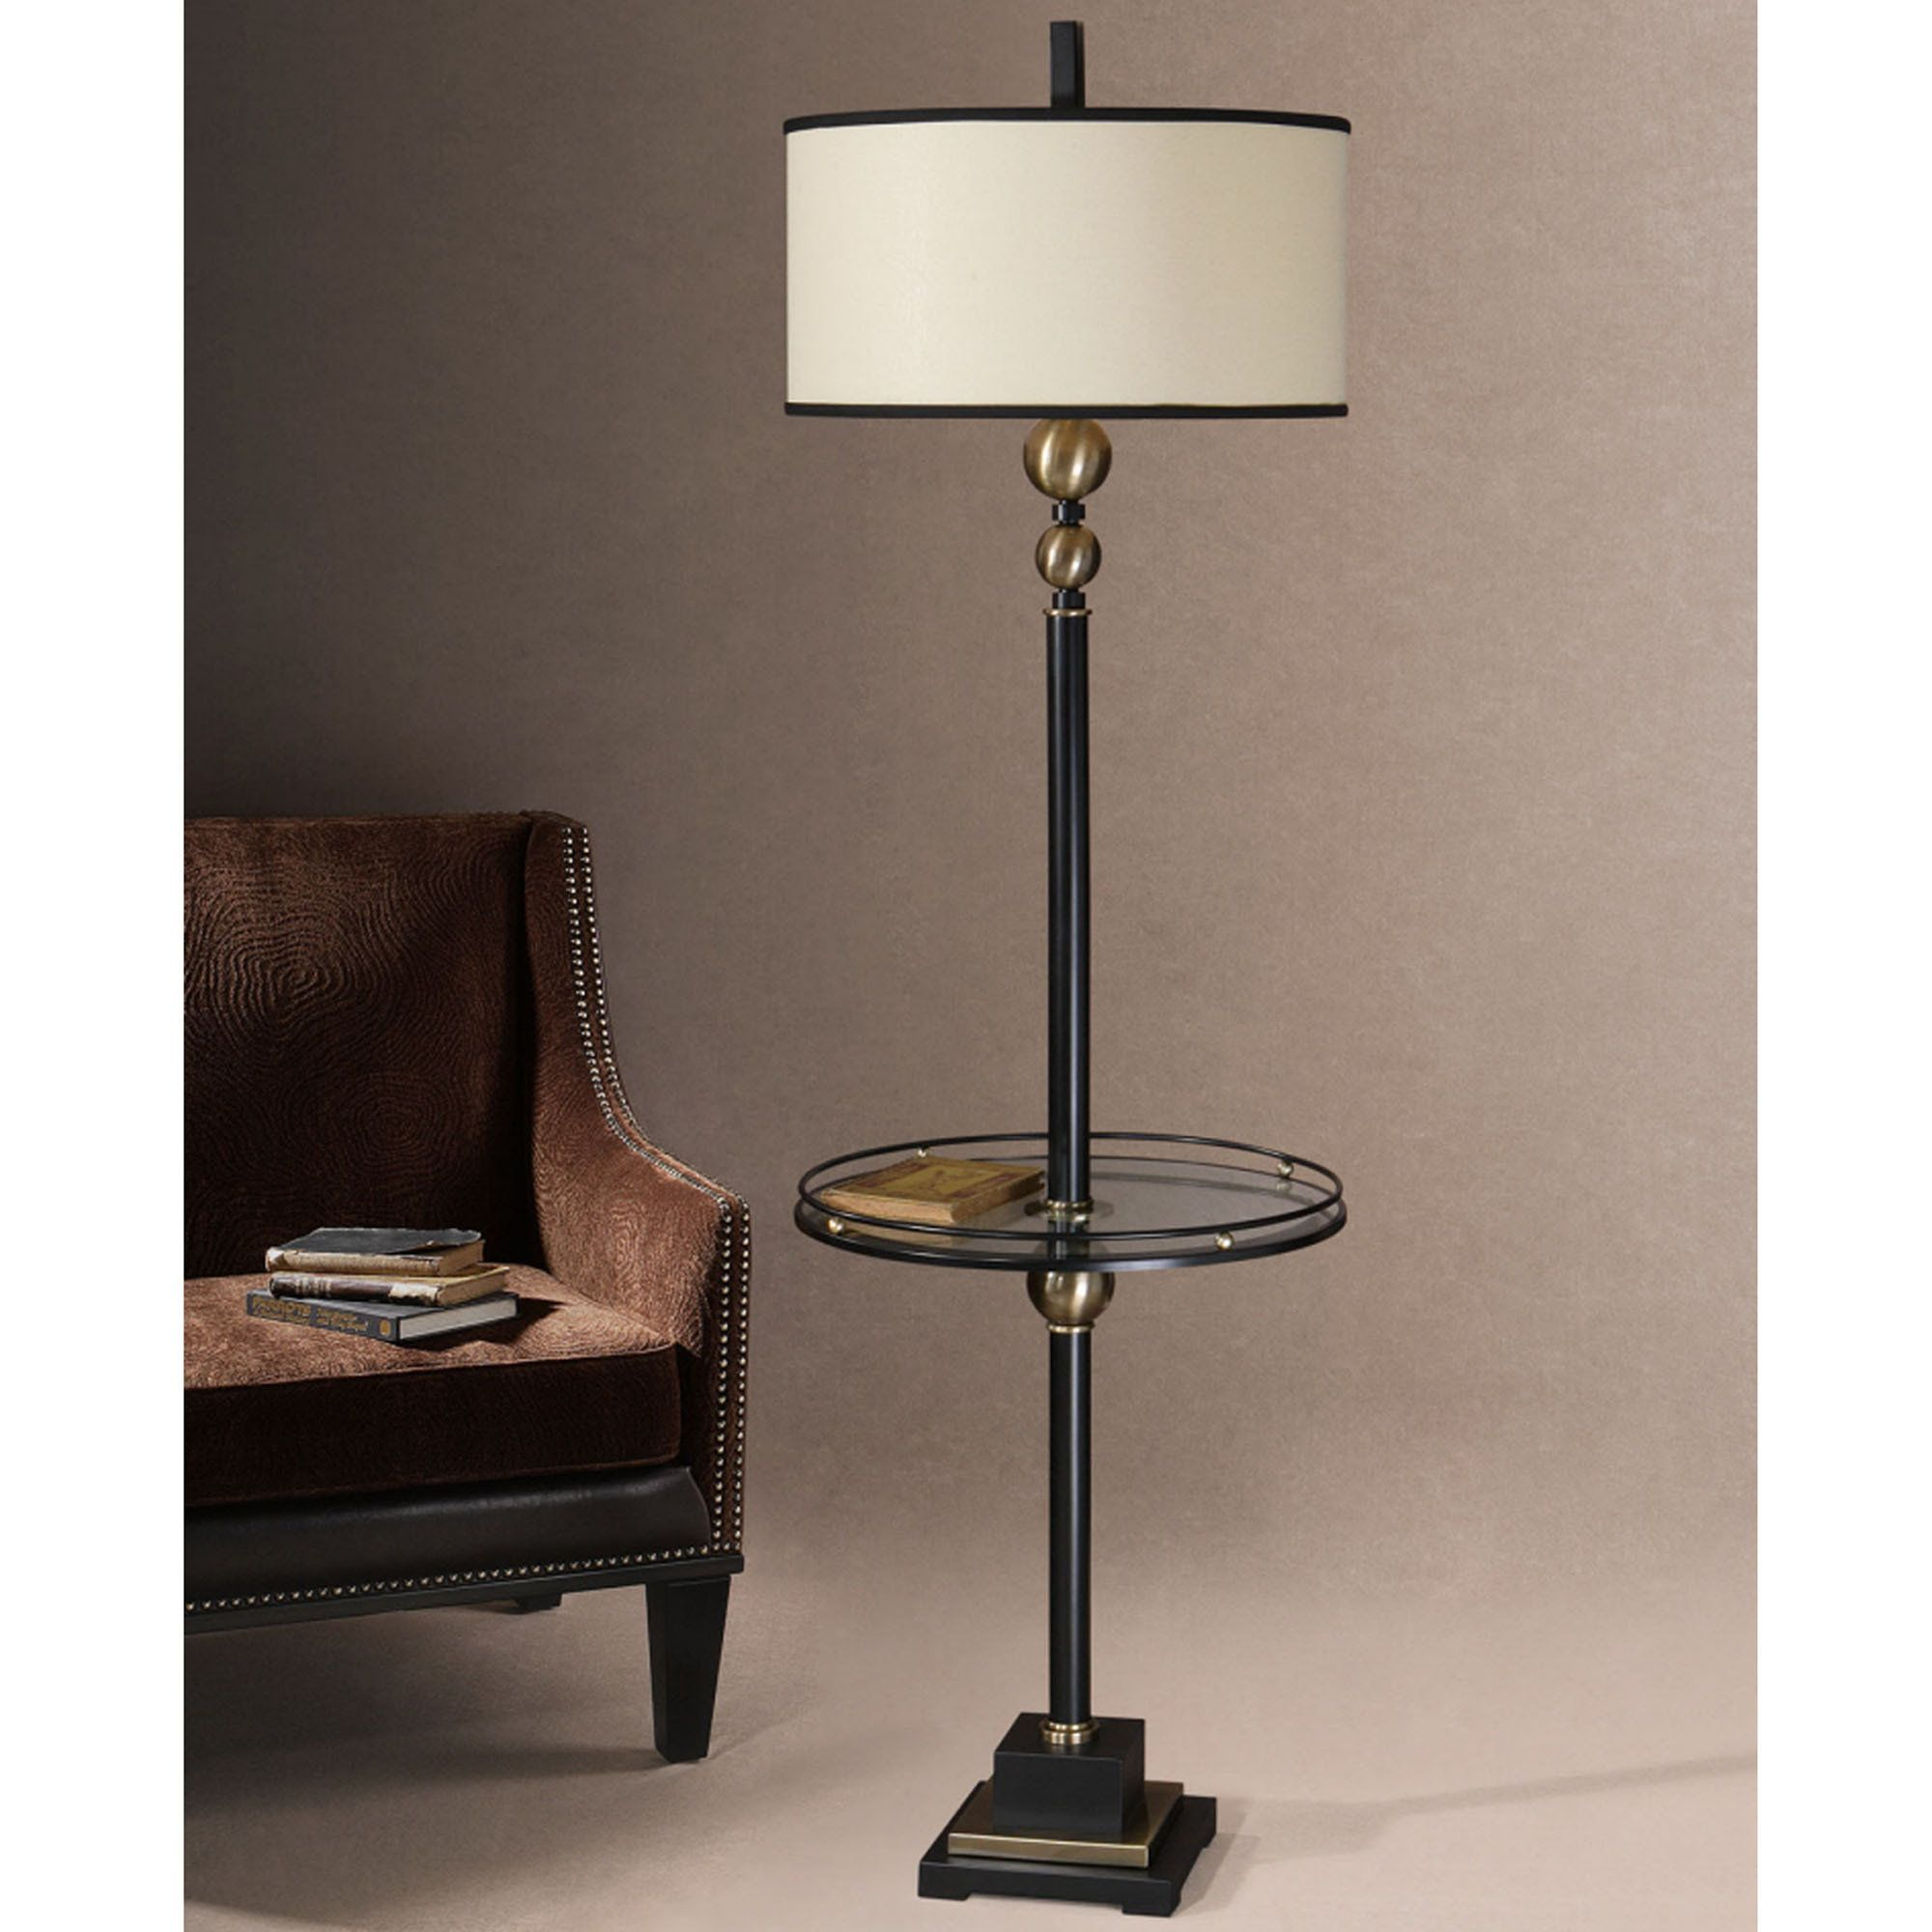 Joaquin Floor Lamp With Attached Glass Table Modern Floor Lamps - Floor lamps with tables